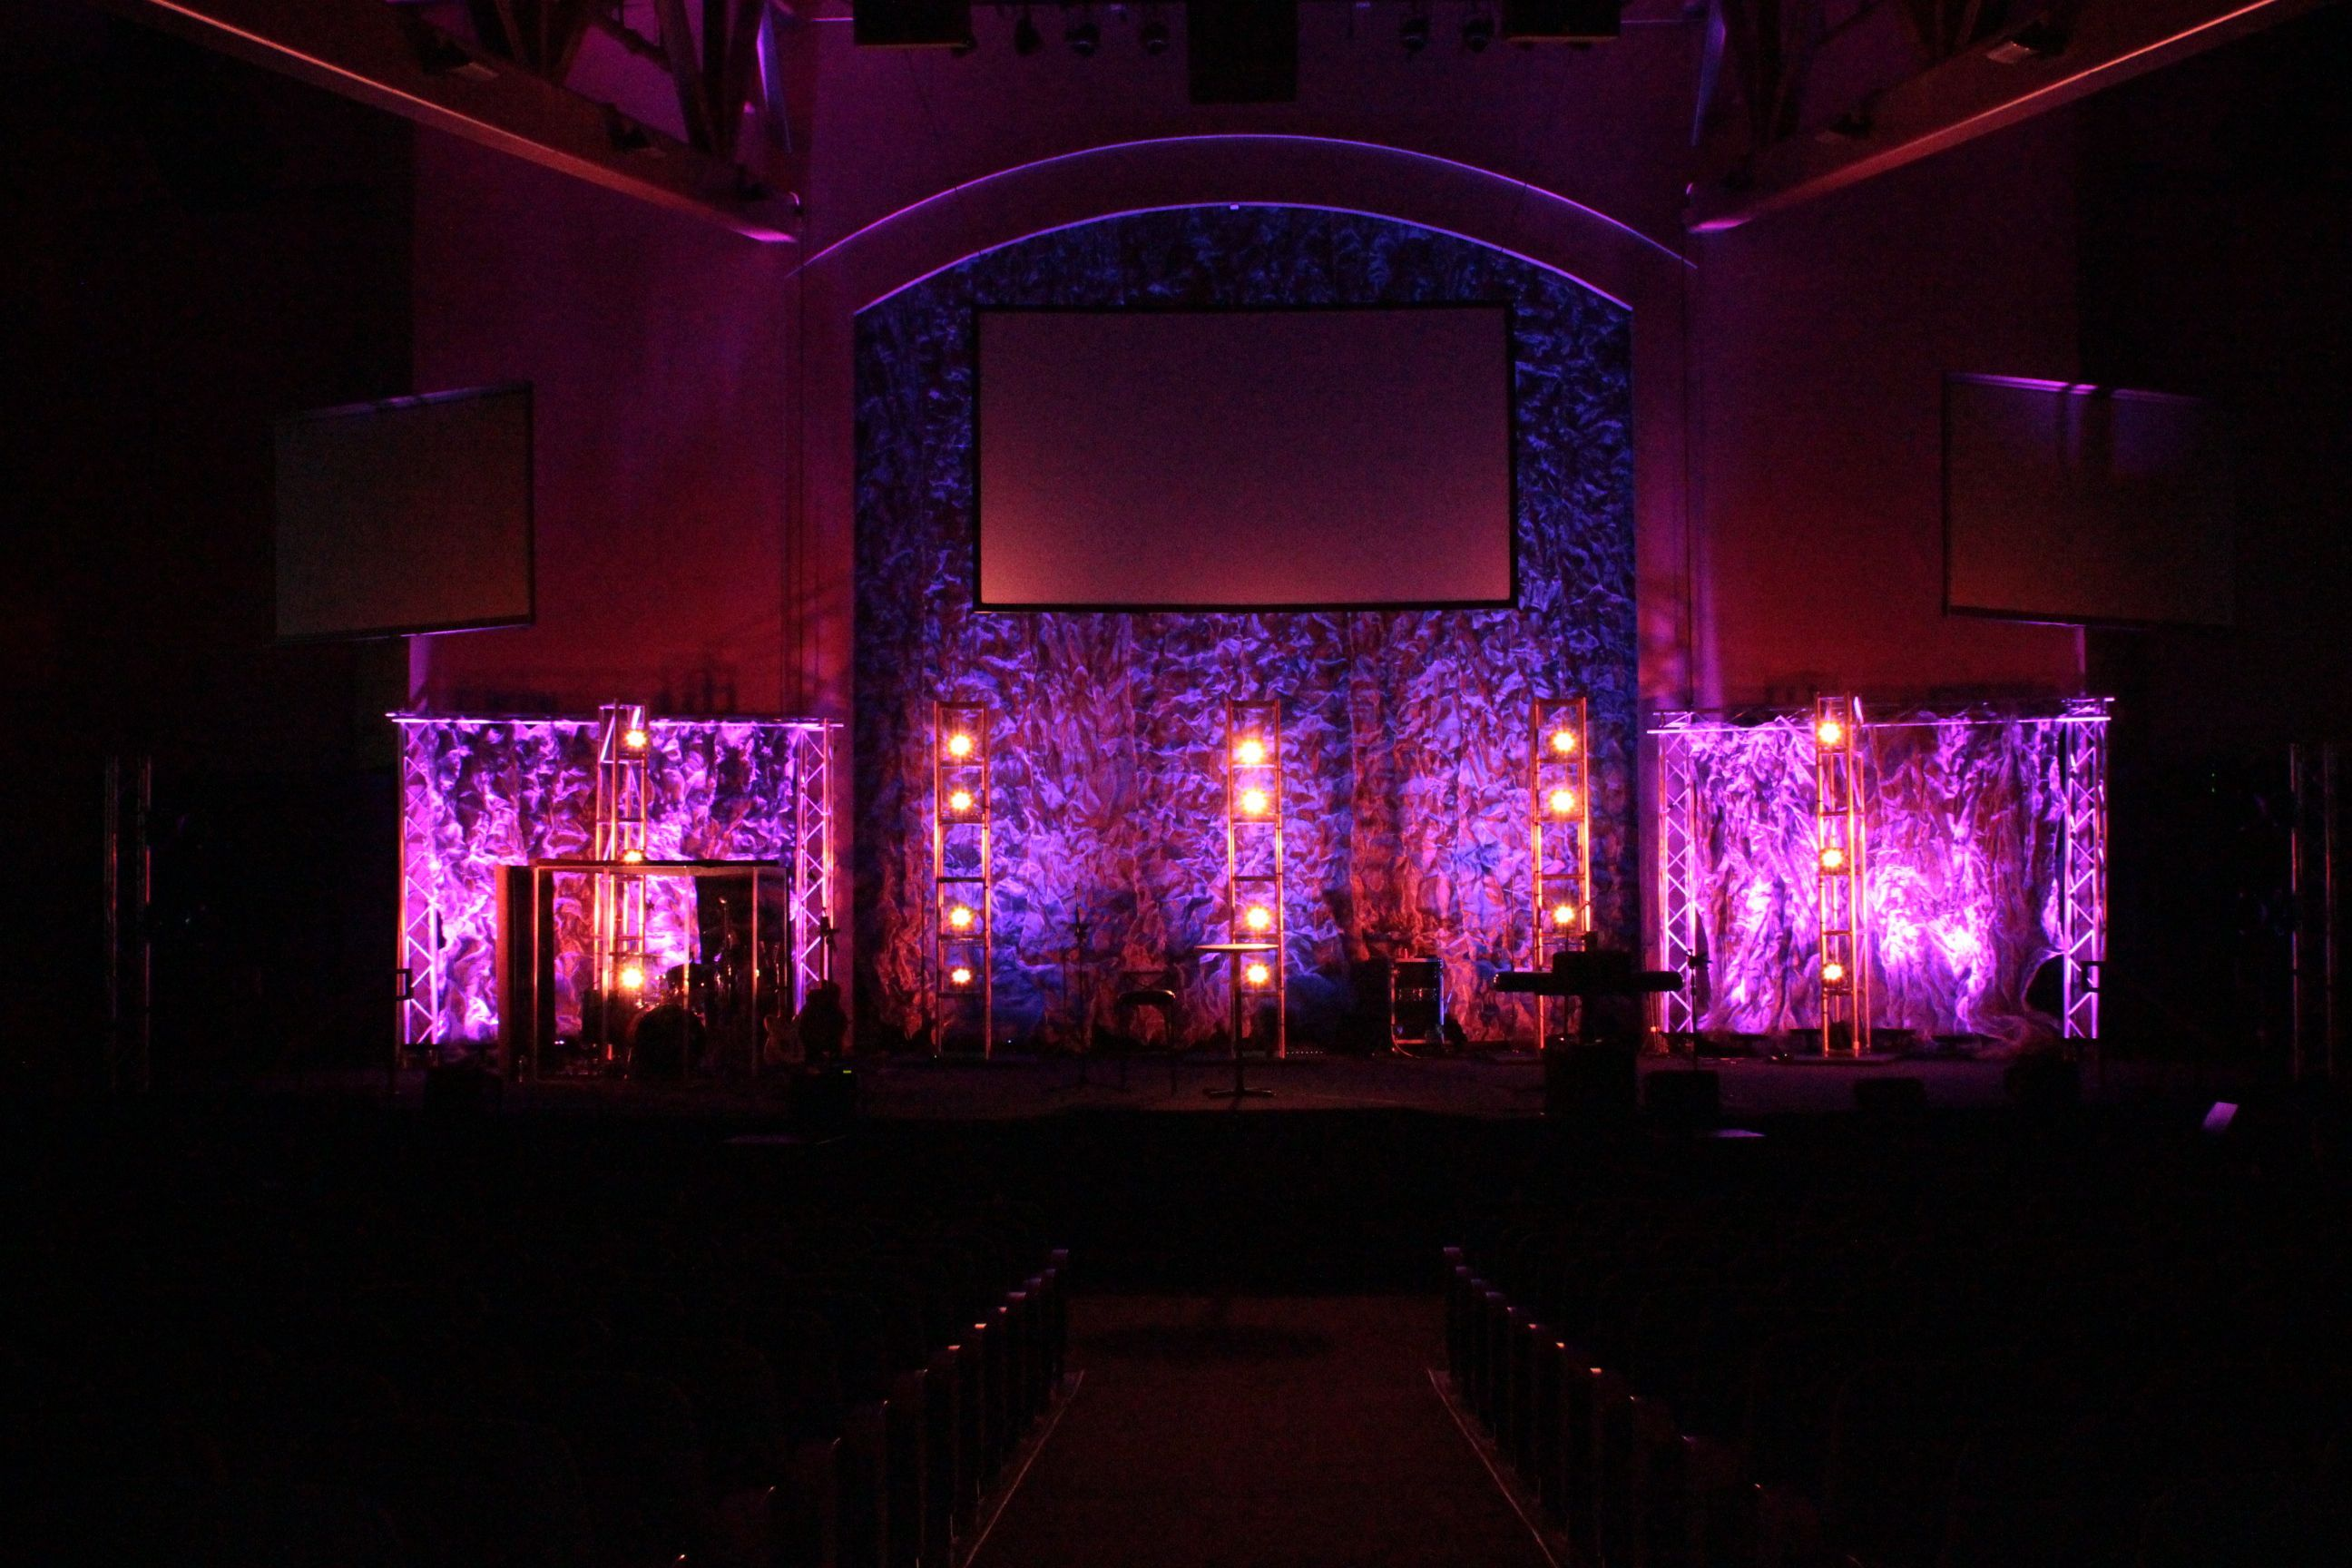 church stage design on pinterest 55 pins